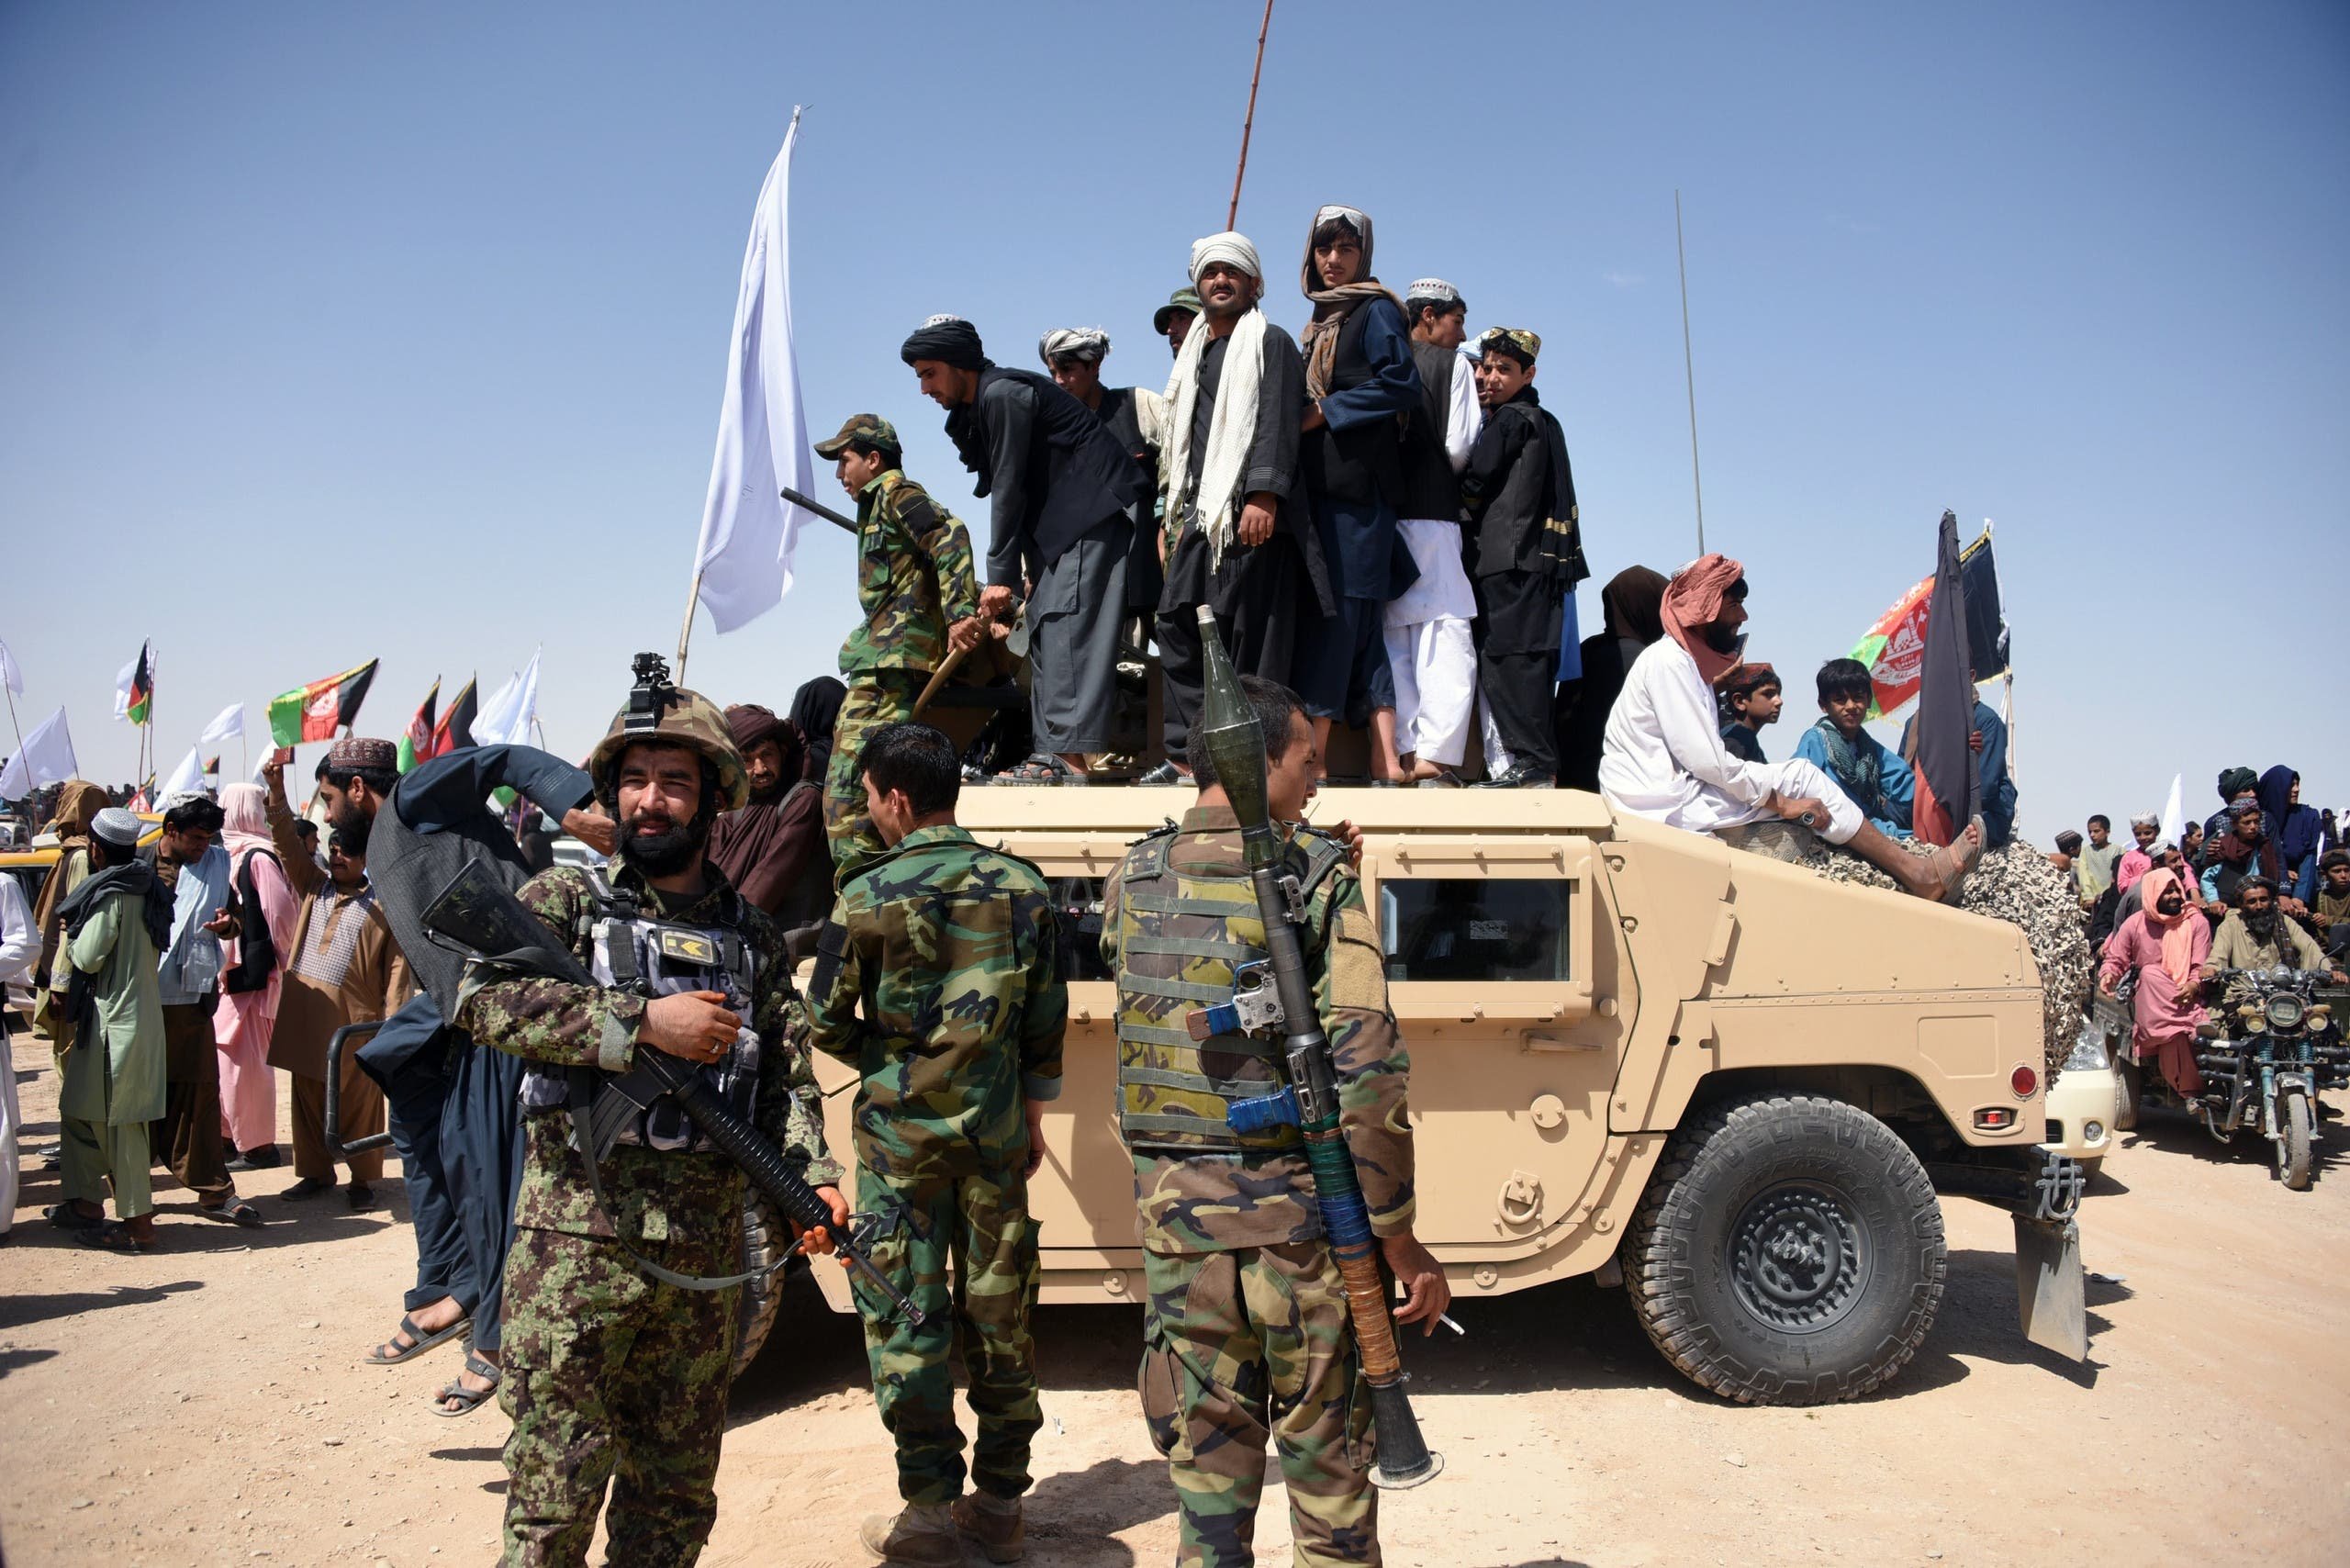 Afghan Taliban militants and residents stand on an armoured Humvee vehicle of the Afghan National Army (ANA) in Maiwand district of Kandahar province on June 17, 2018. (AFP)